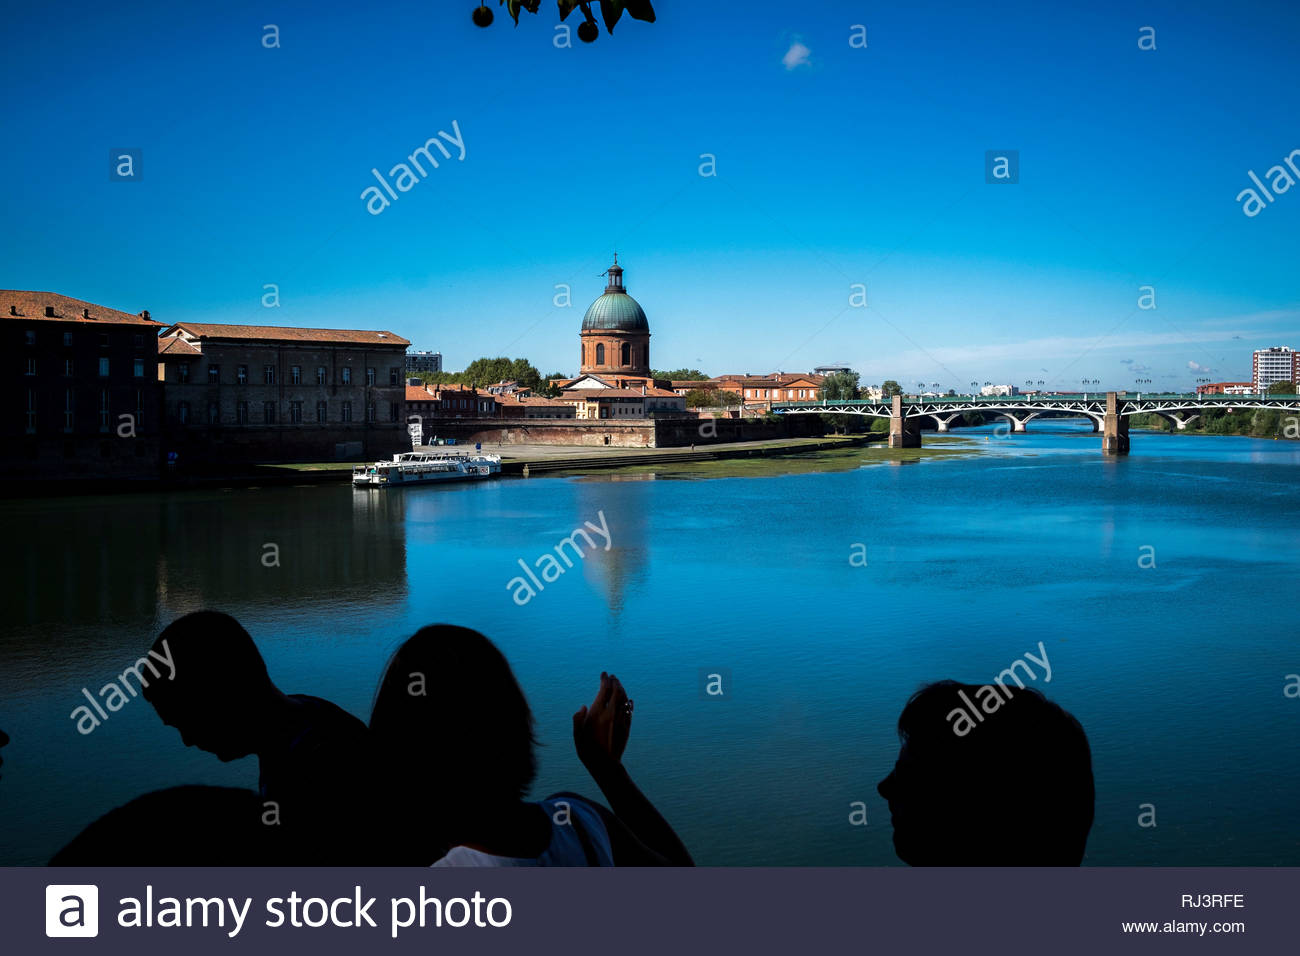 panoramic of la garonne river and dome de la grave in toulouse france RJ3RFE